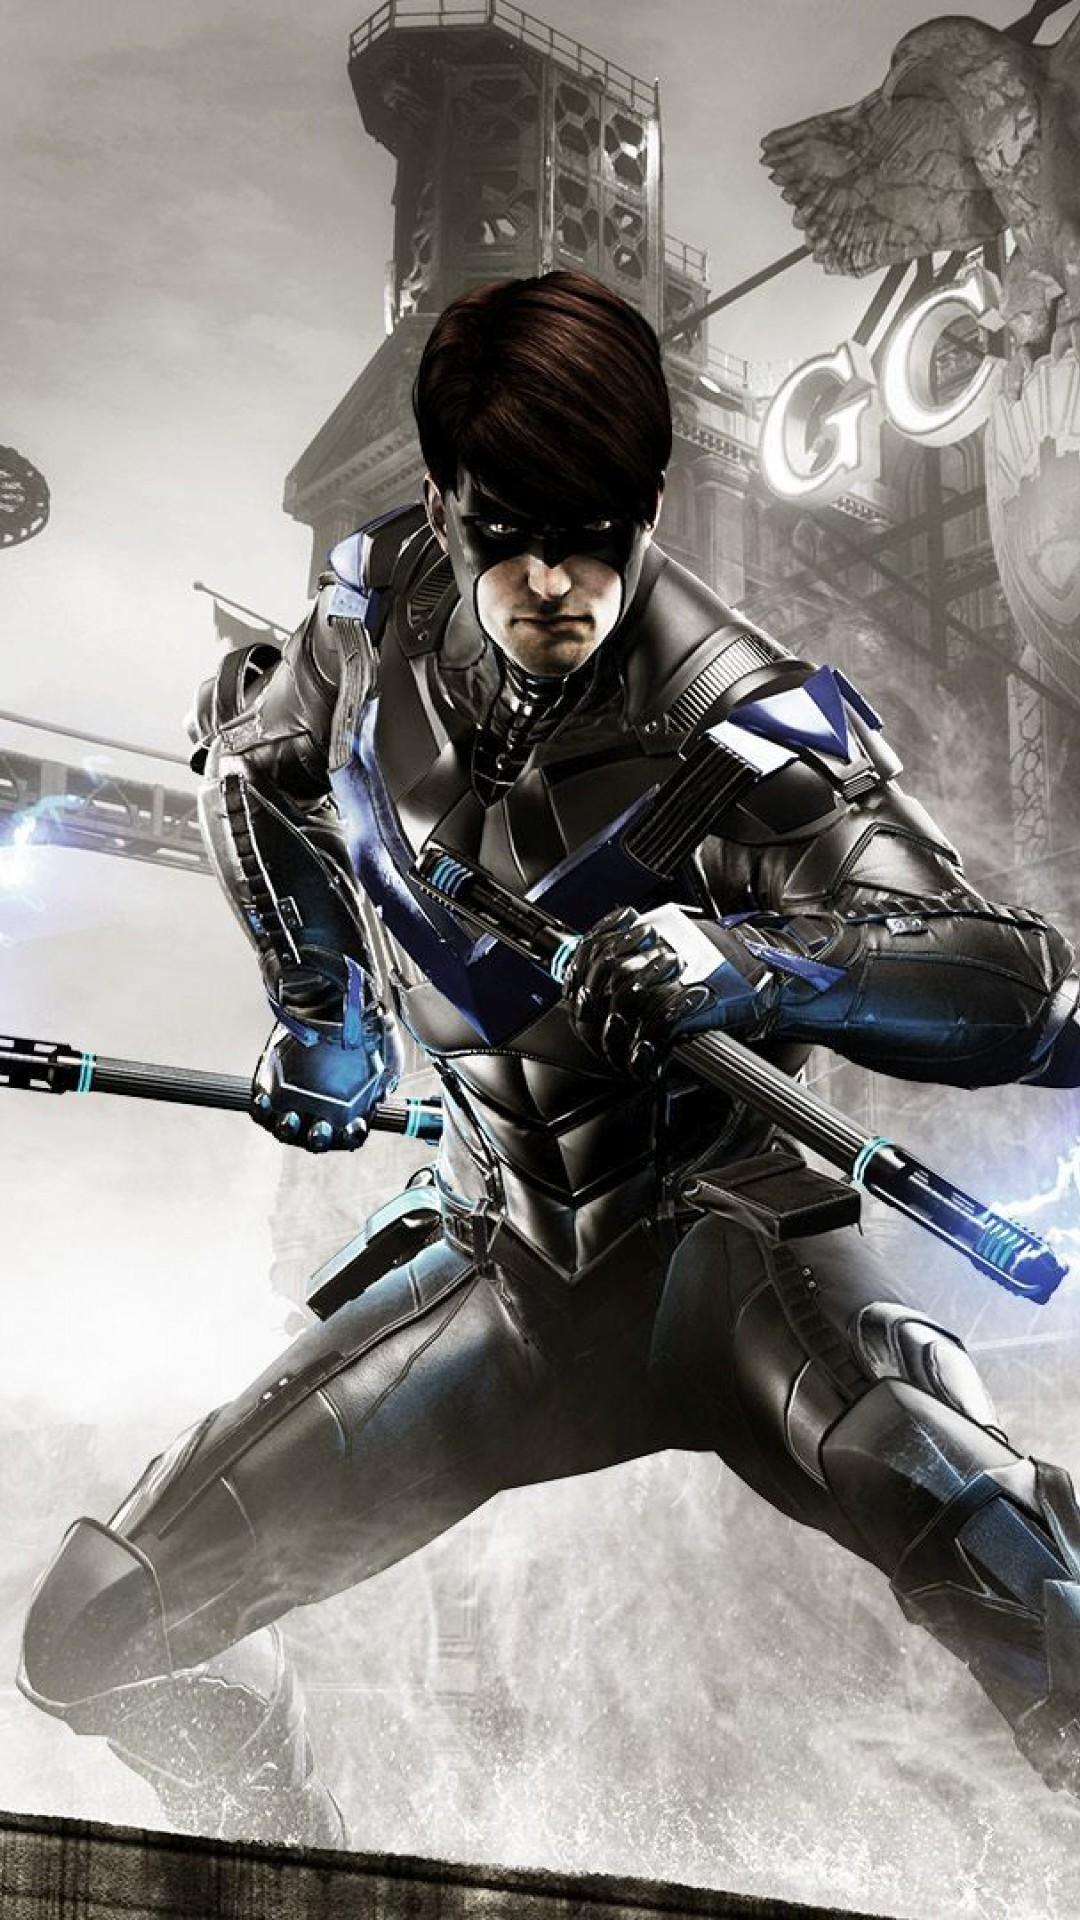 Res: 1080x1920, Awesome Nightwing IPhone Photos Collection: Nightwing IPhone Wallpapers